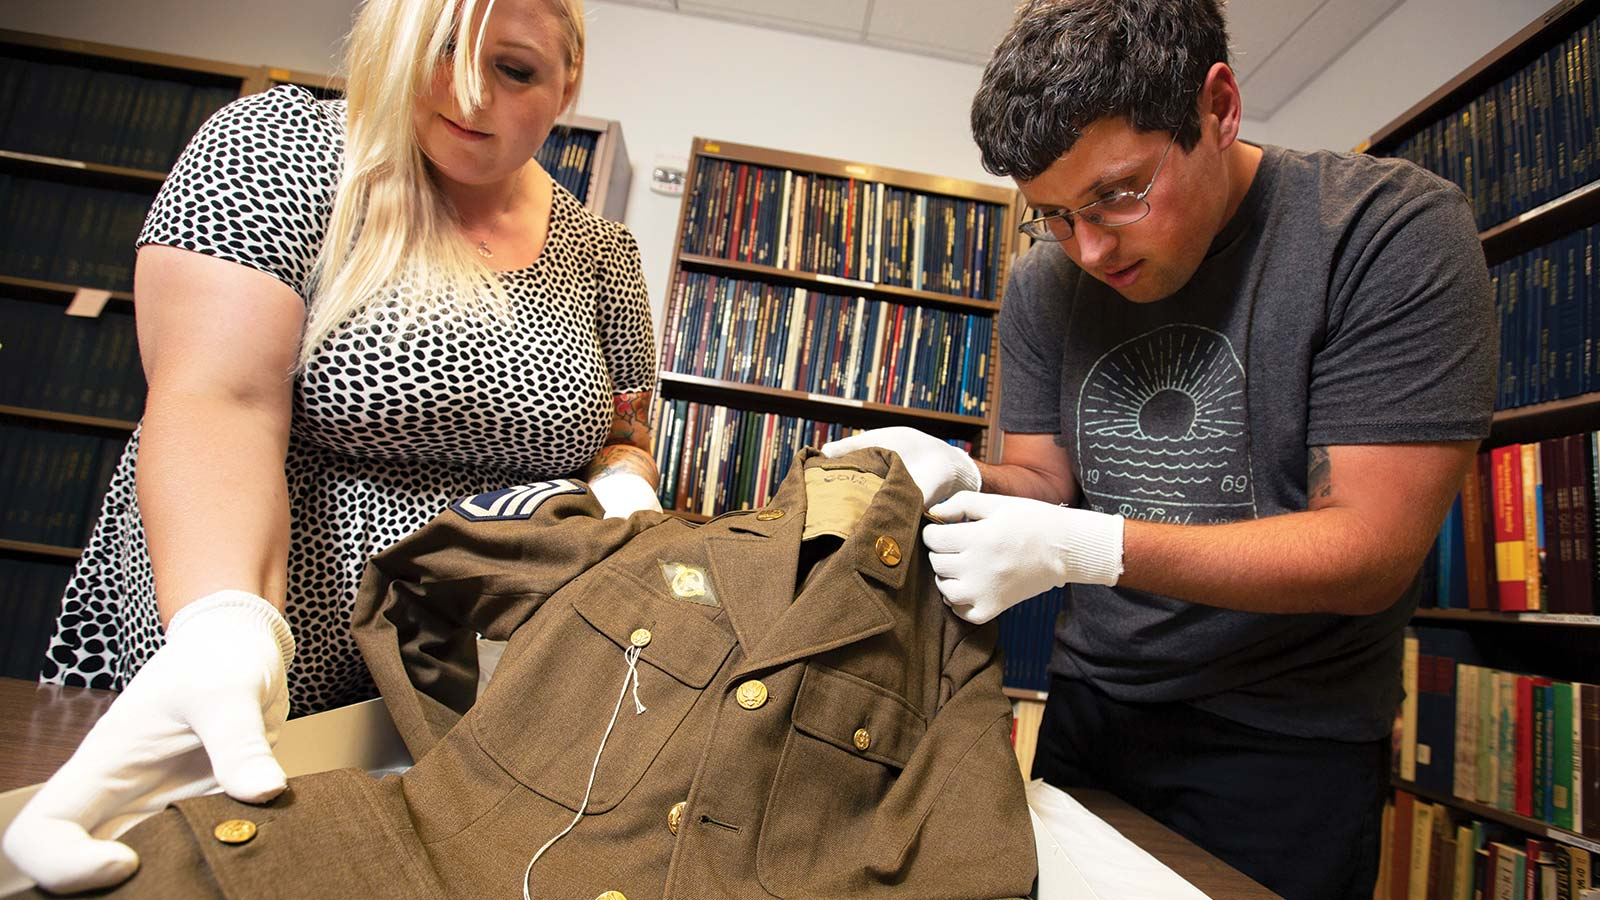 Students examining soldier uniform.